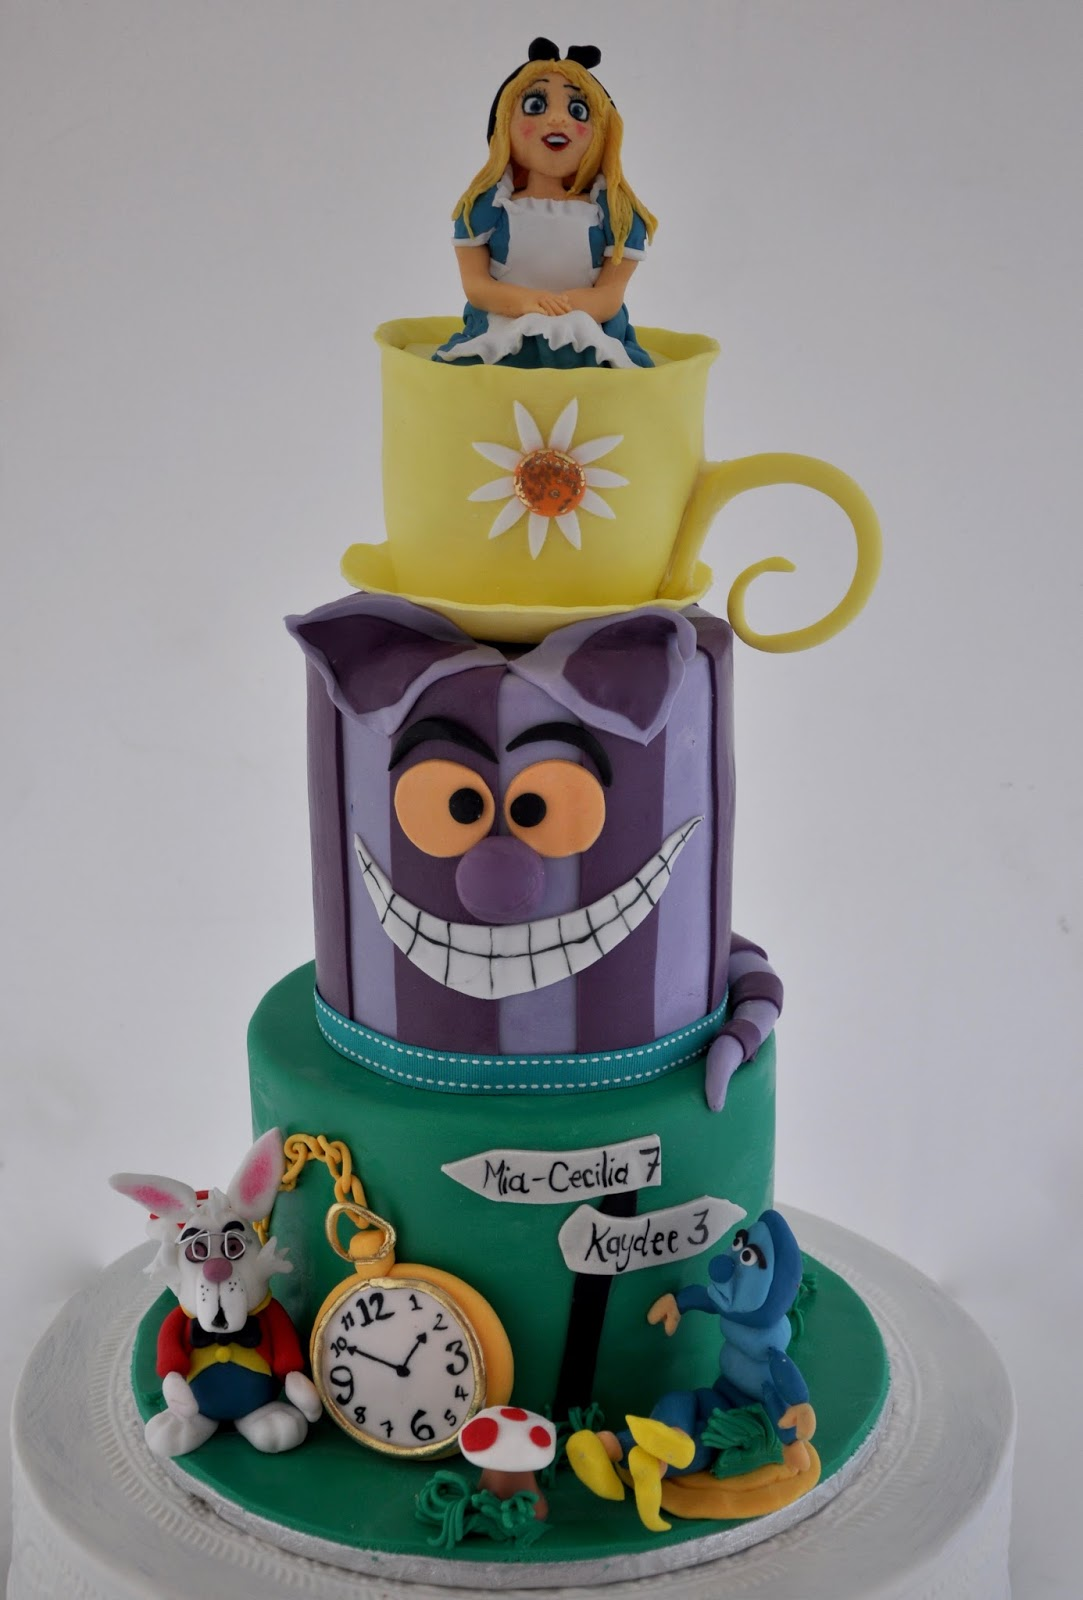 rozanne s cakes alice in wonderland cake on birthday cakes durbanville cape town